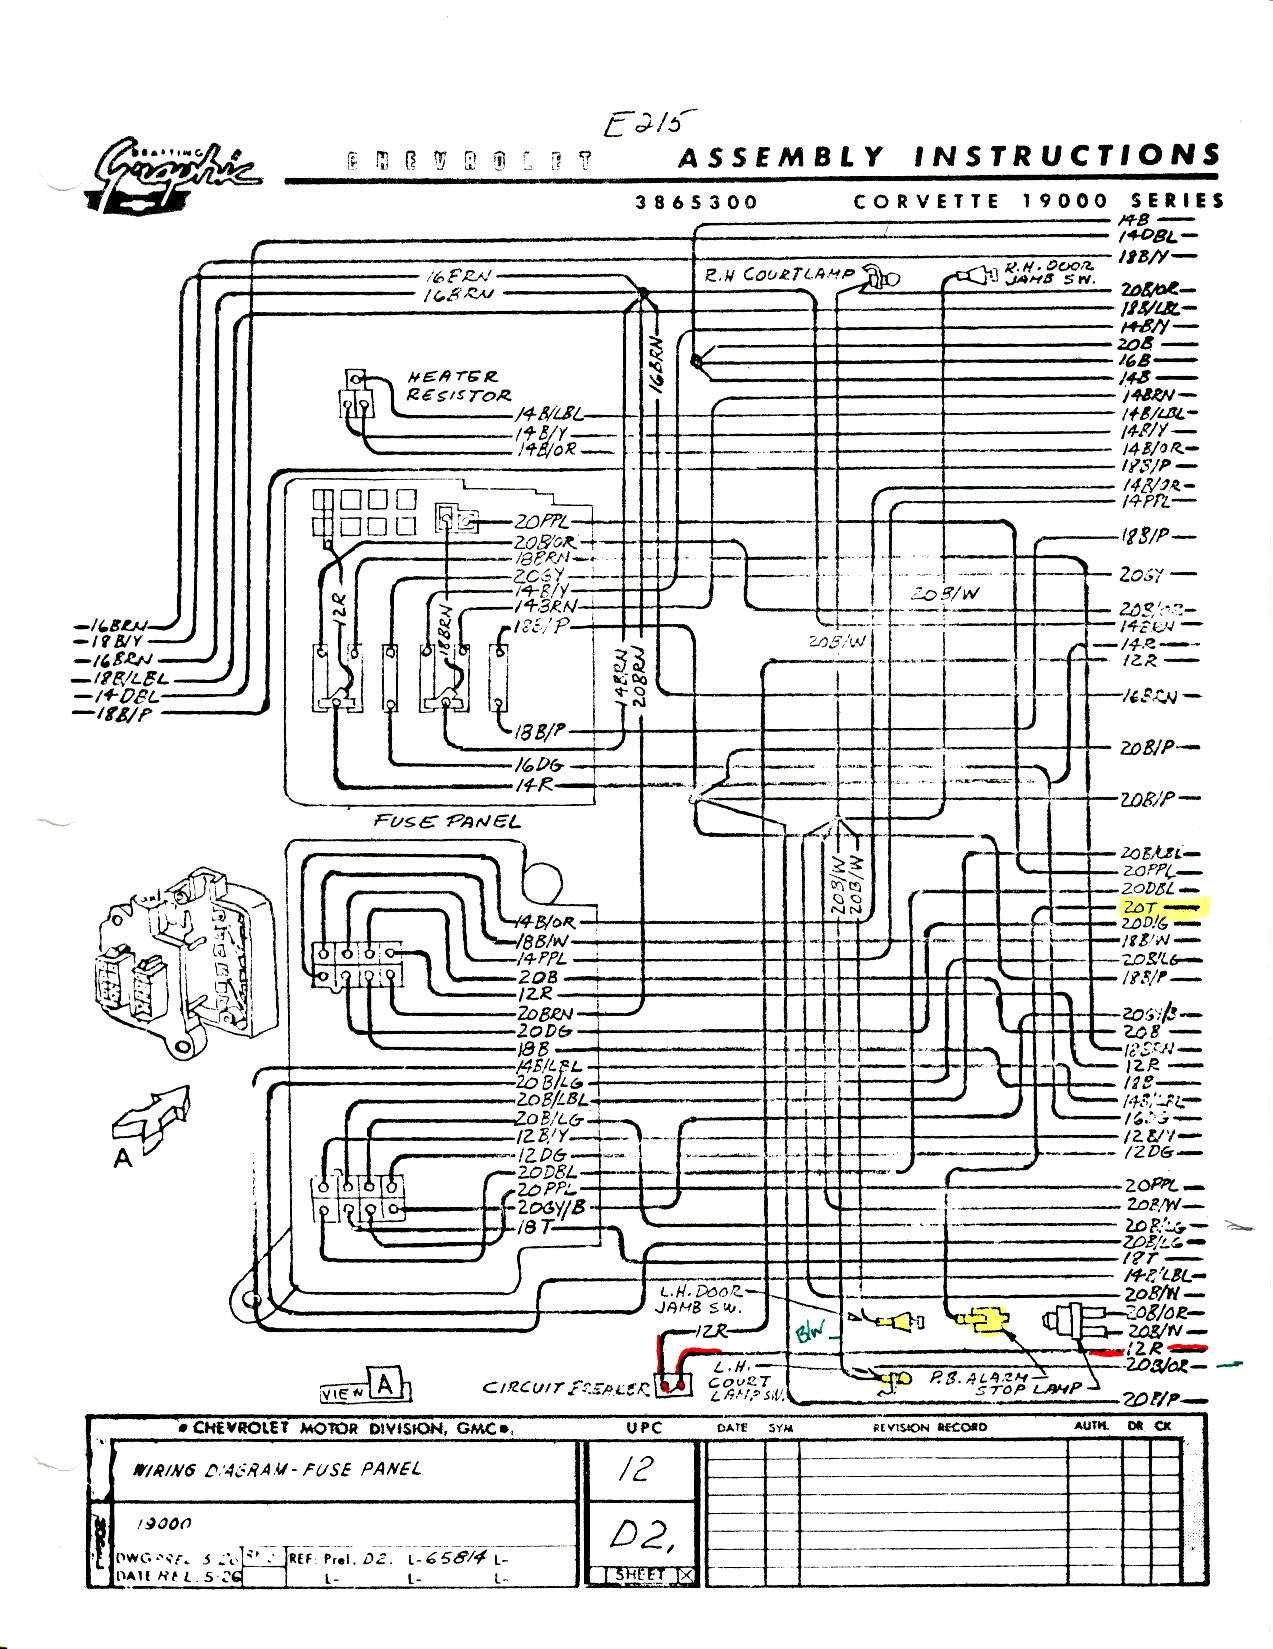 hight resolution of 1960 chevy ignition switch wiring diagram wiring library 1963 corvair wiring diagram 1963 chevrolet corvette dash wiring diagram